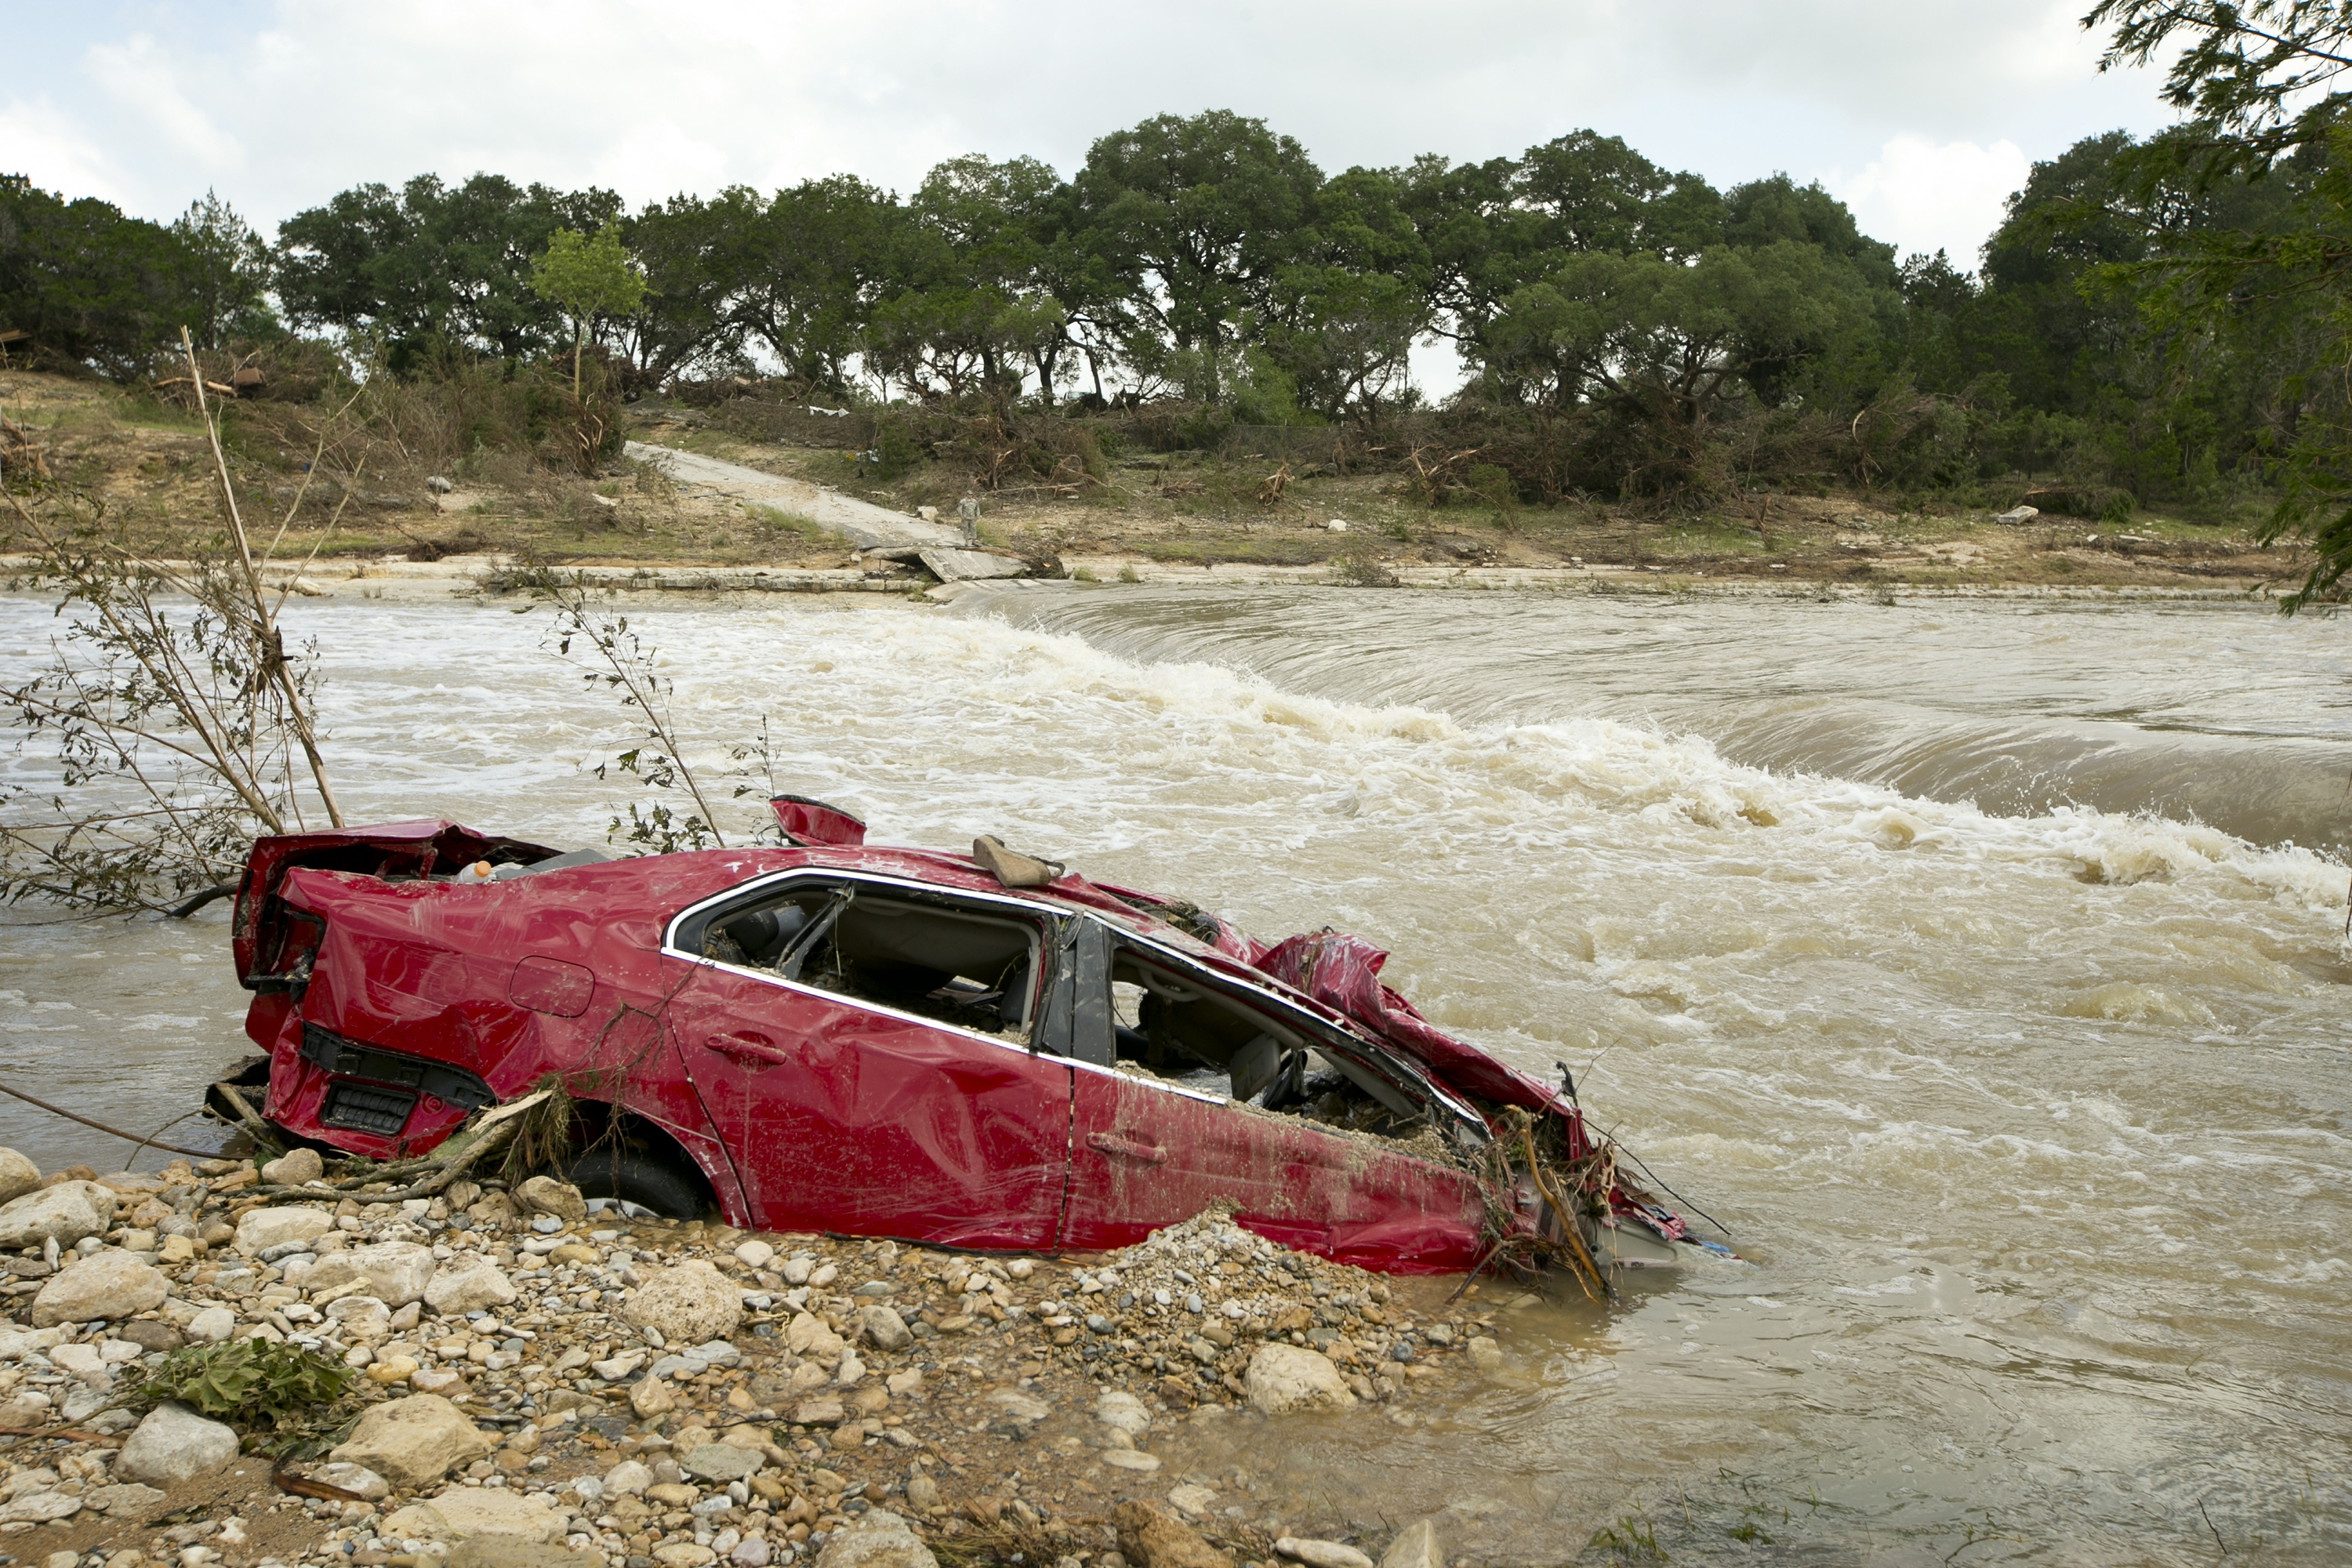 A destroyed car is submerged in the Blanco River in Wimberley, Texas, after Tuesday's flooding.